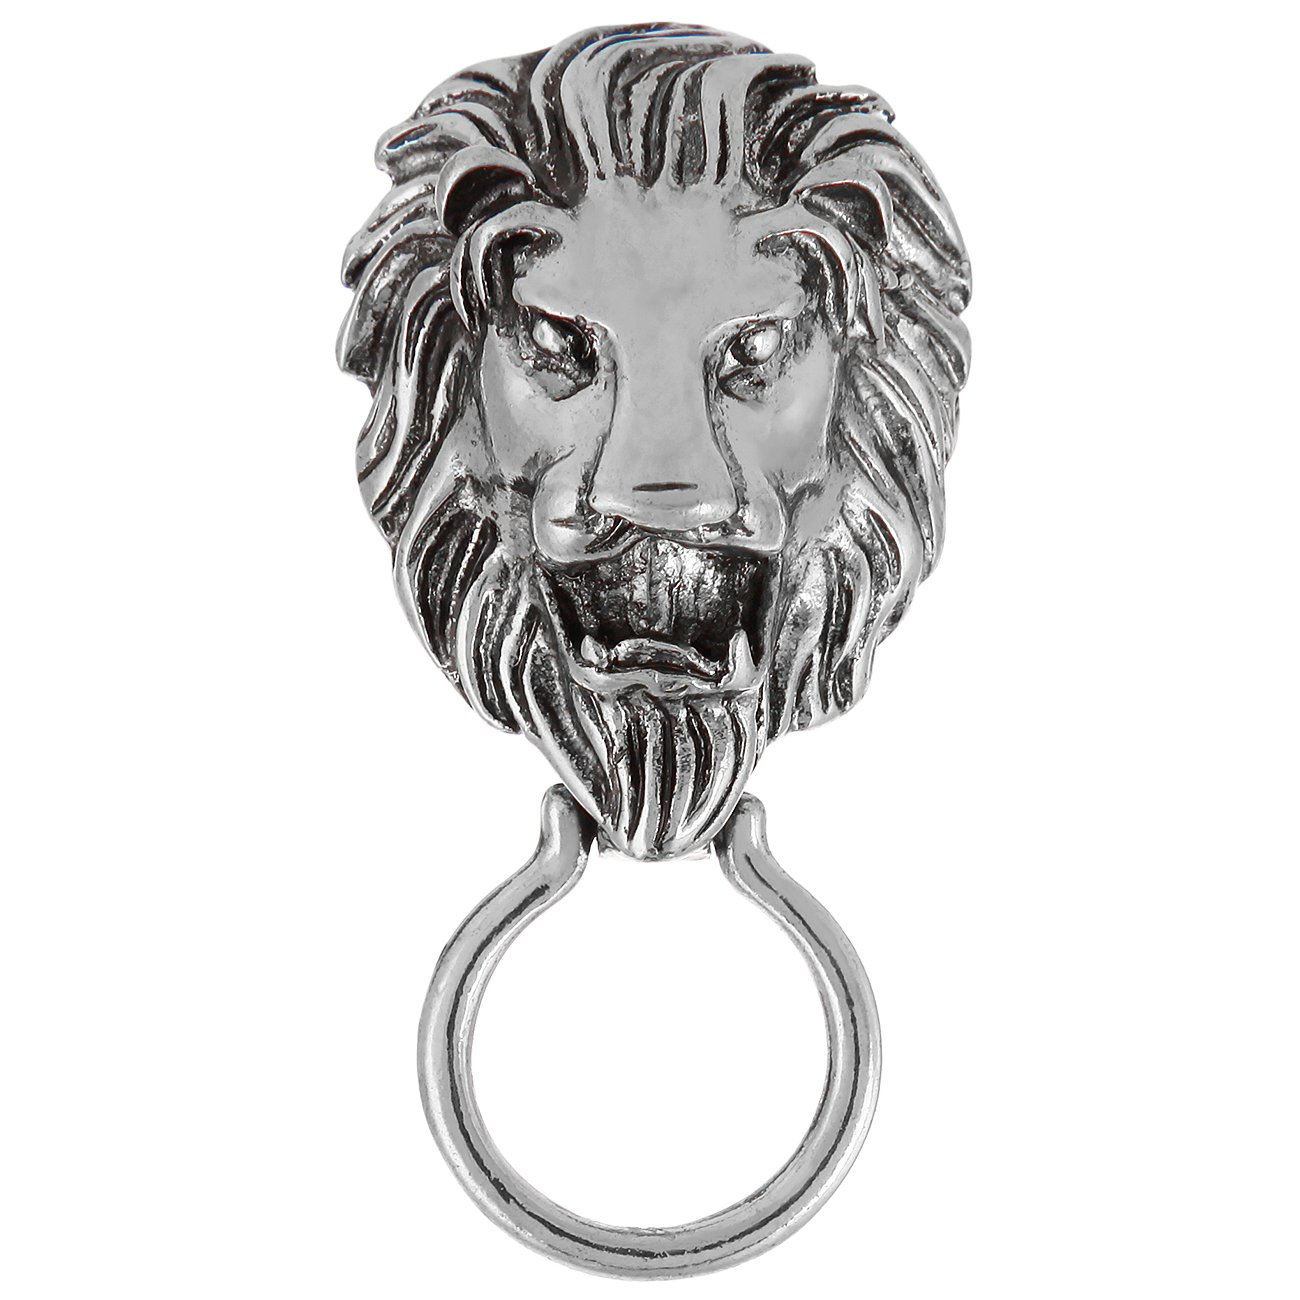 CHUANGYUN Vintage Lion Biker Animal Brooch Magnetic Eyeglass Holder (Sliver)